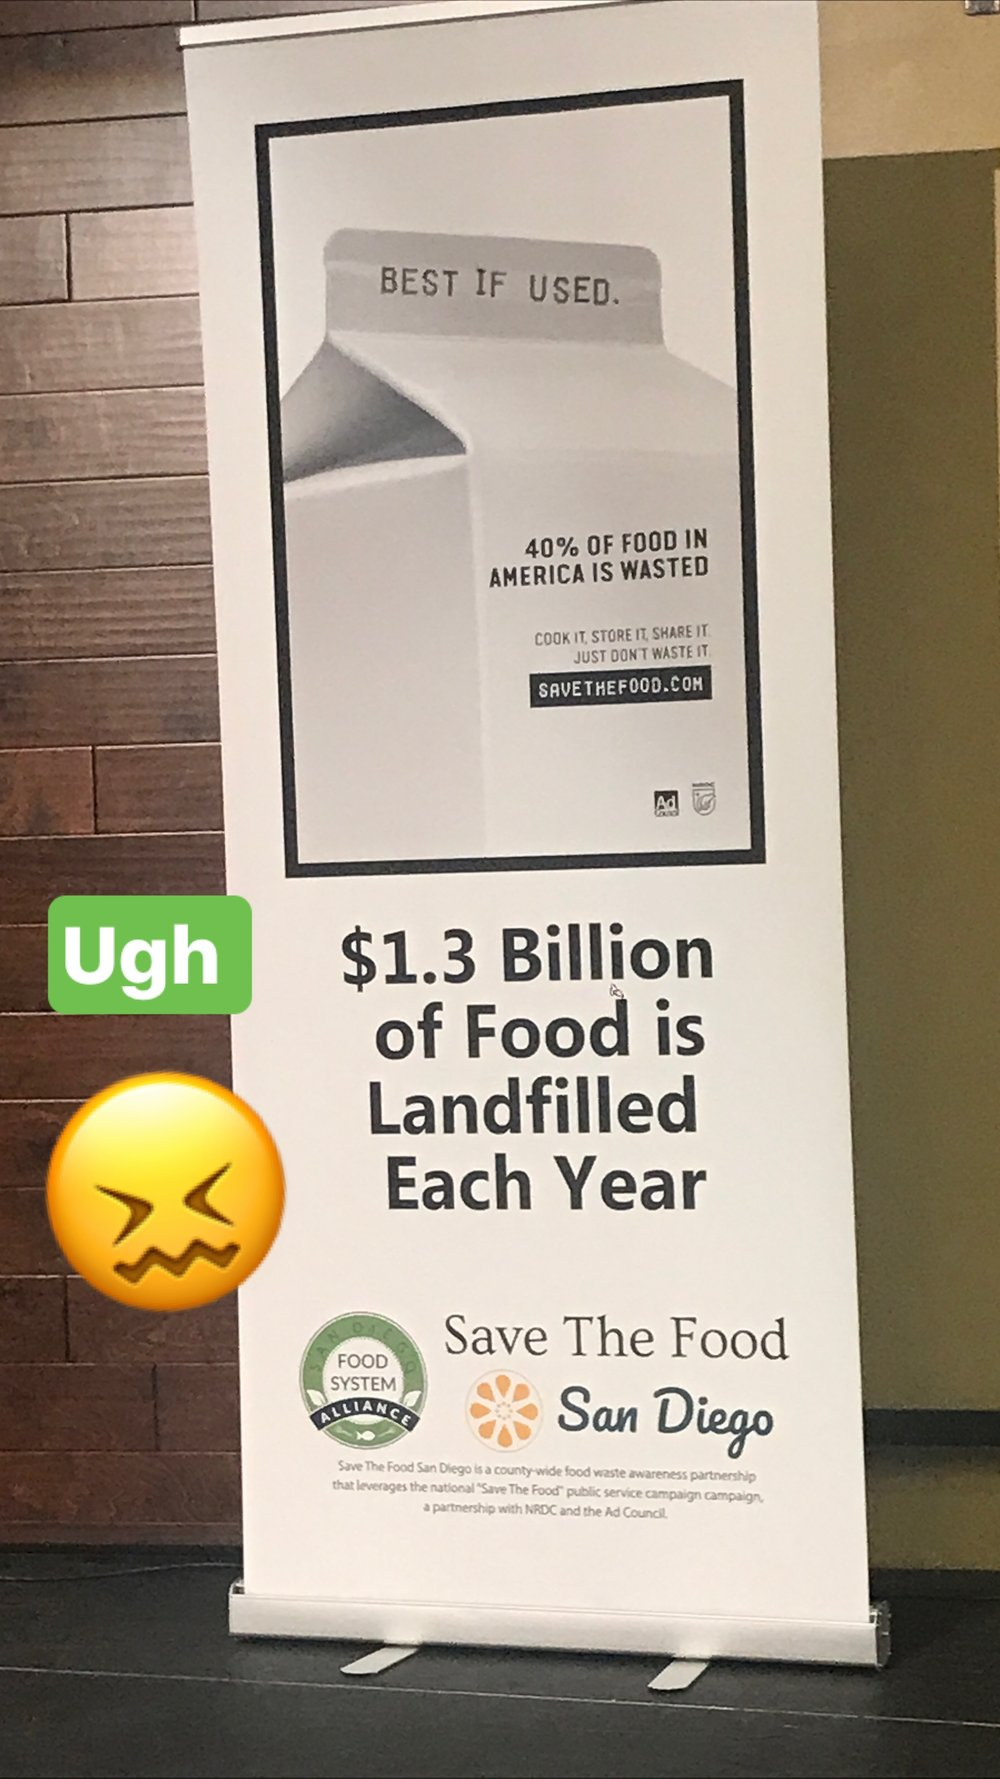 food waste in the landfill: Food Waste Solutions Summit with the San Diego Food System Alliance